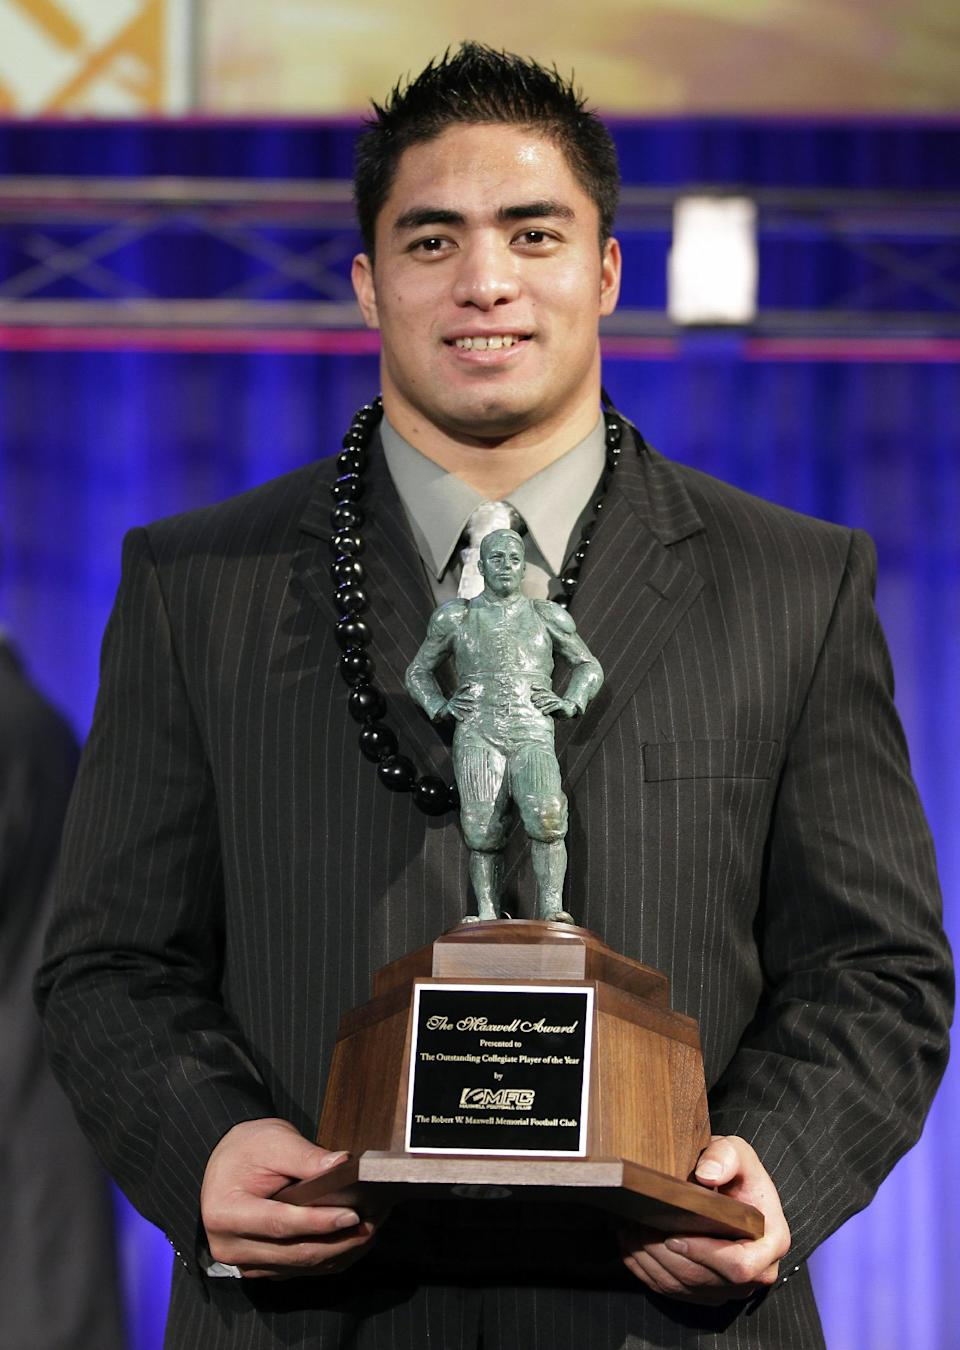 Notre Dame defensive back Manti Te'o displays his trophy for the Maxell Award after being named the nation's college player of the year at the Home Depot College Football Awards in Lake Buena Vista, Fla., Thursday, Dec. 6, 2012. (AP Photo/John Raoux)